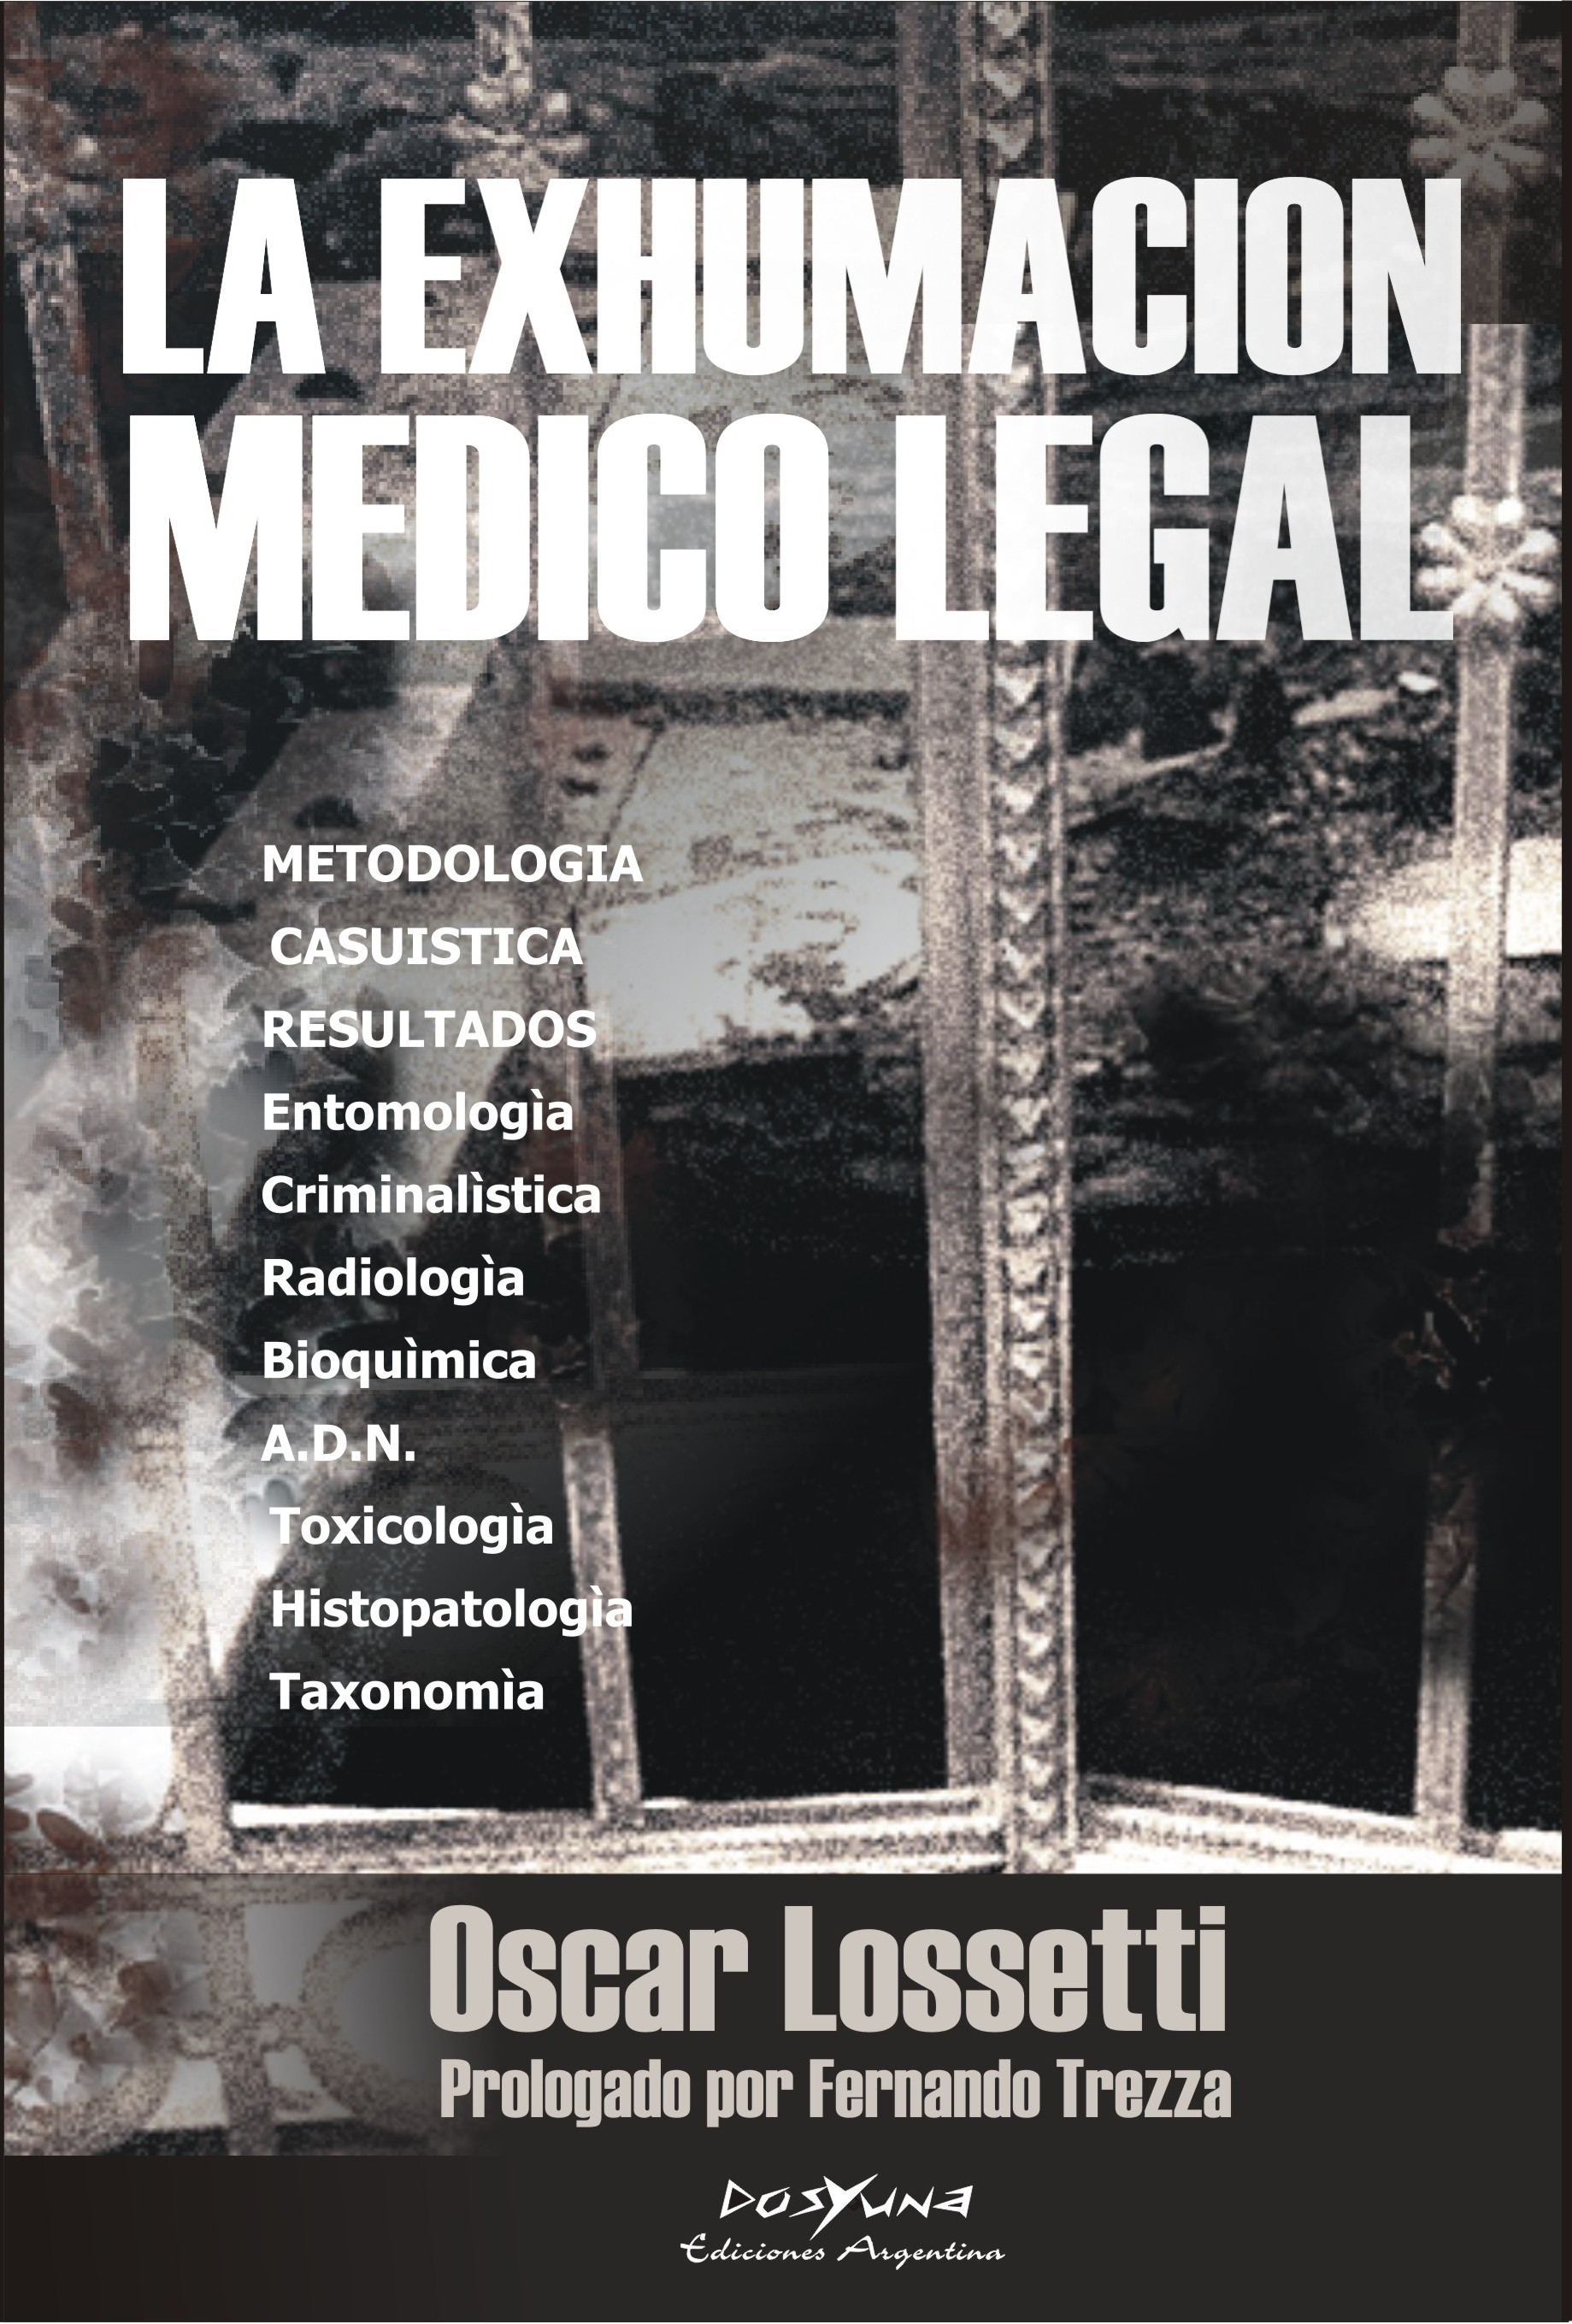 La exhumacion médico legal